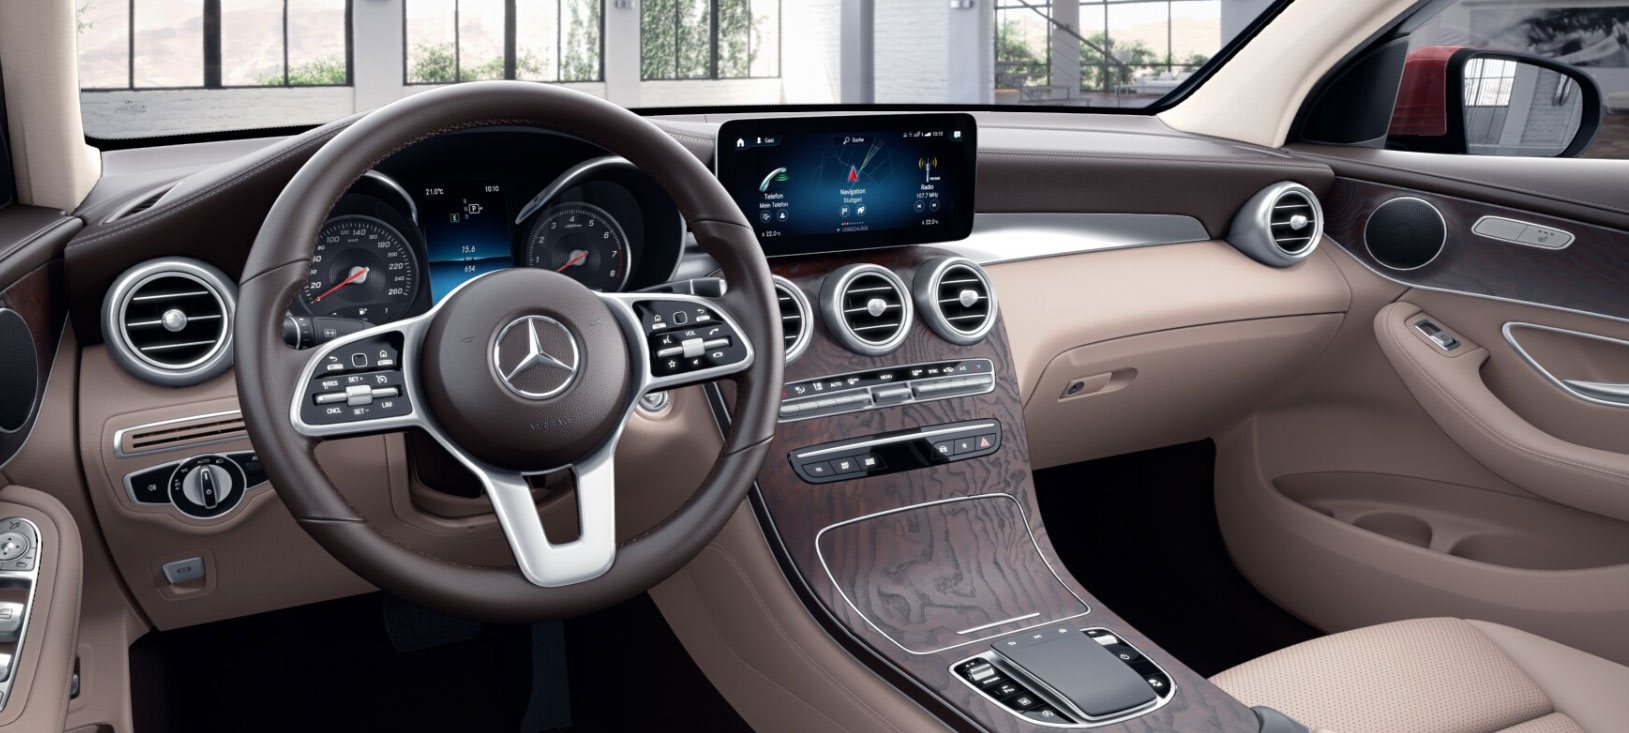 Mercedes-Benz GLC Coupe кокпіт